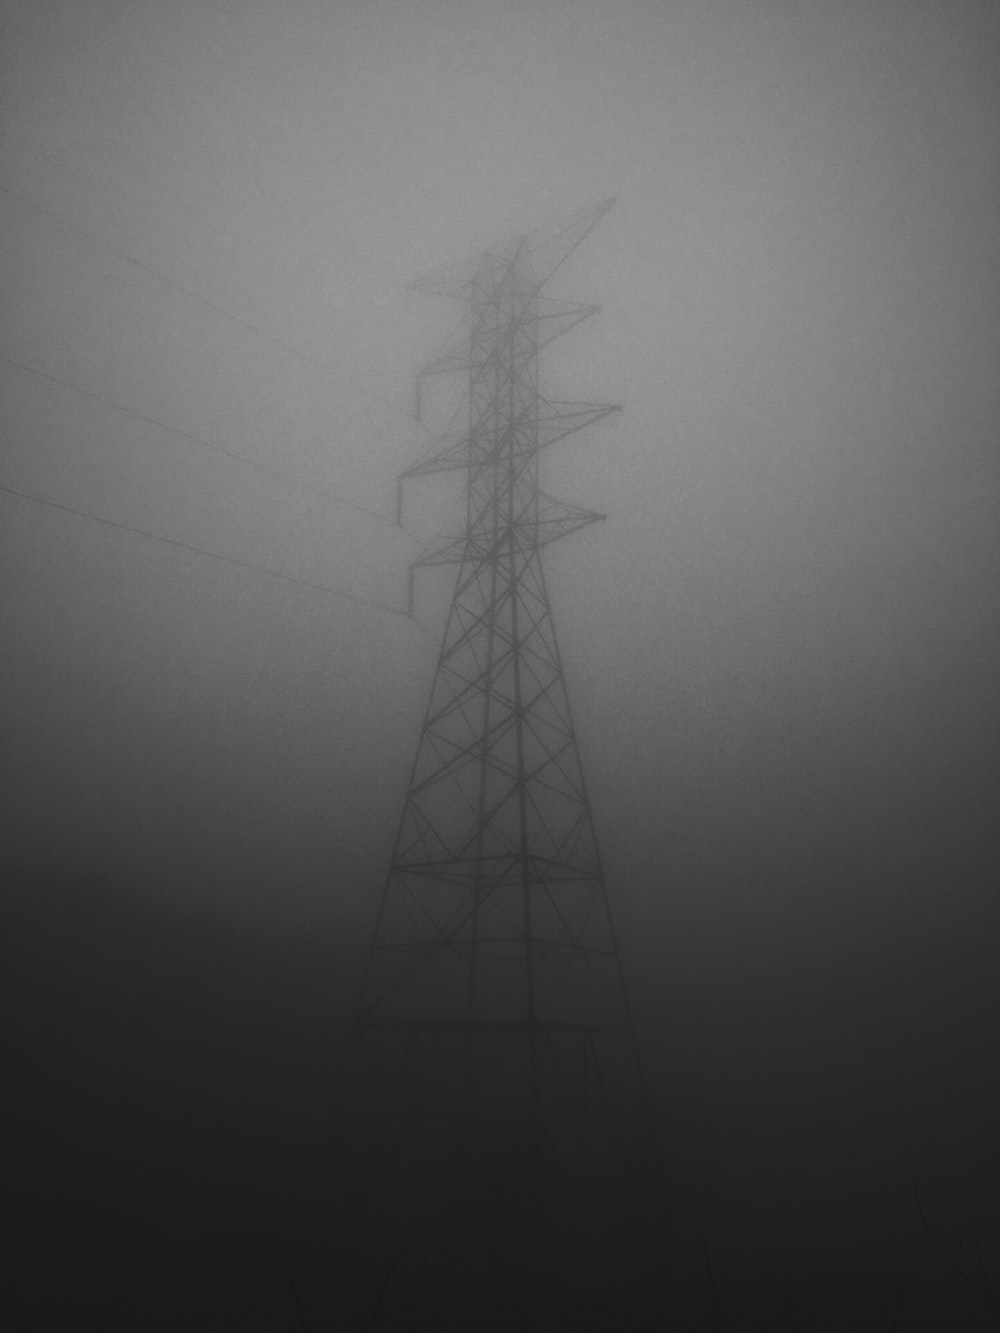 electric pylon covered by gray clouds